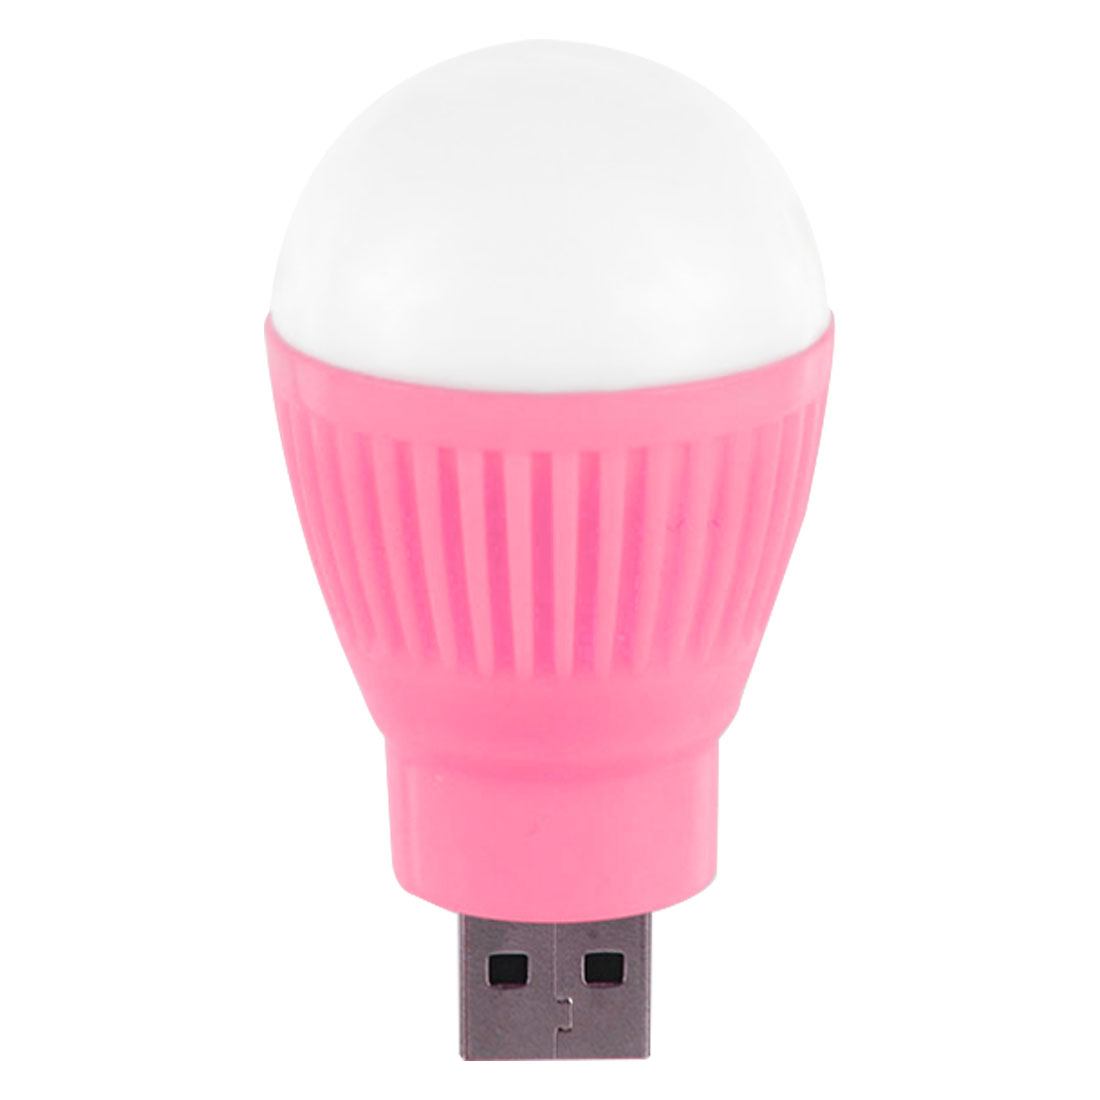 Us 0 76 18 Off Round Outdoor Flashlight Emergency Lamp Mini Usb Led Bulb Night Light Laptop Computer Energy Saving Reading Light Camping Lamp In